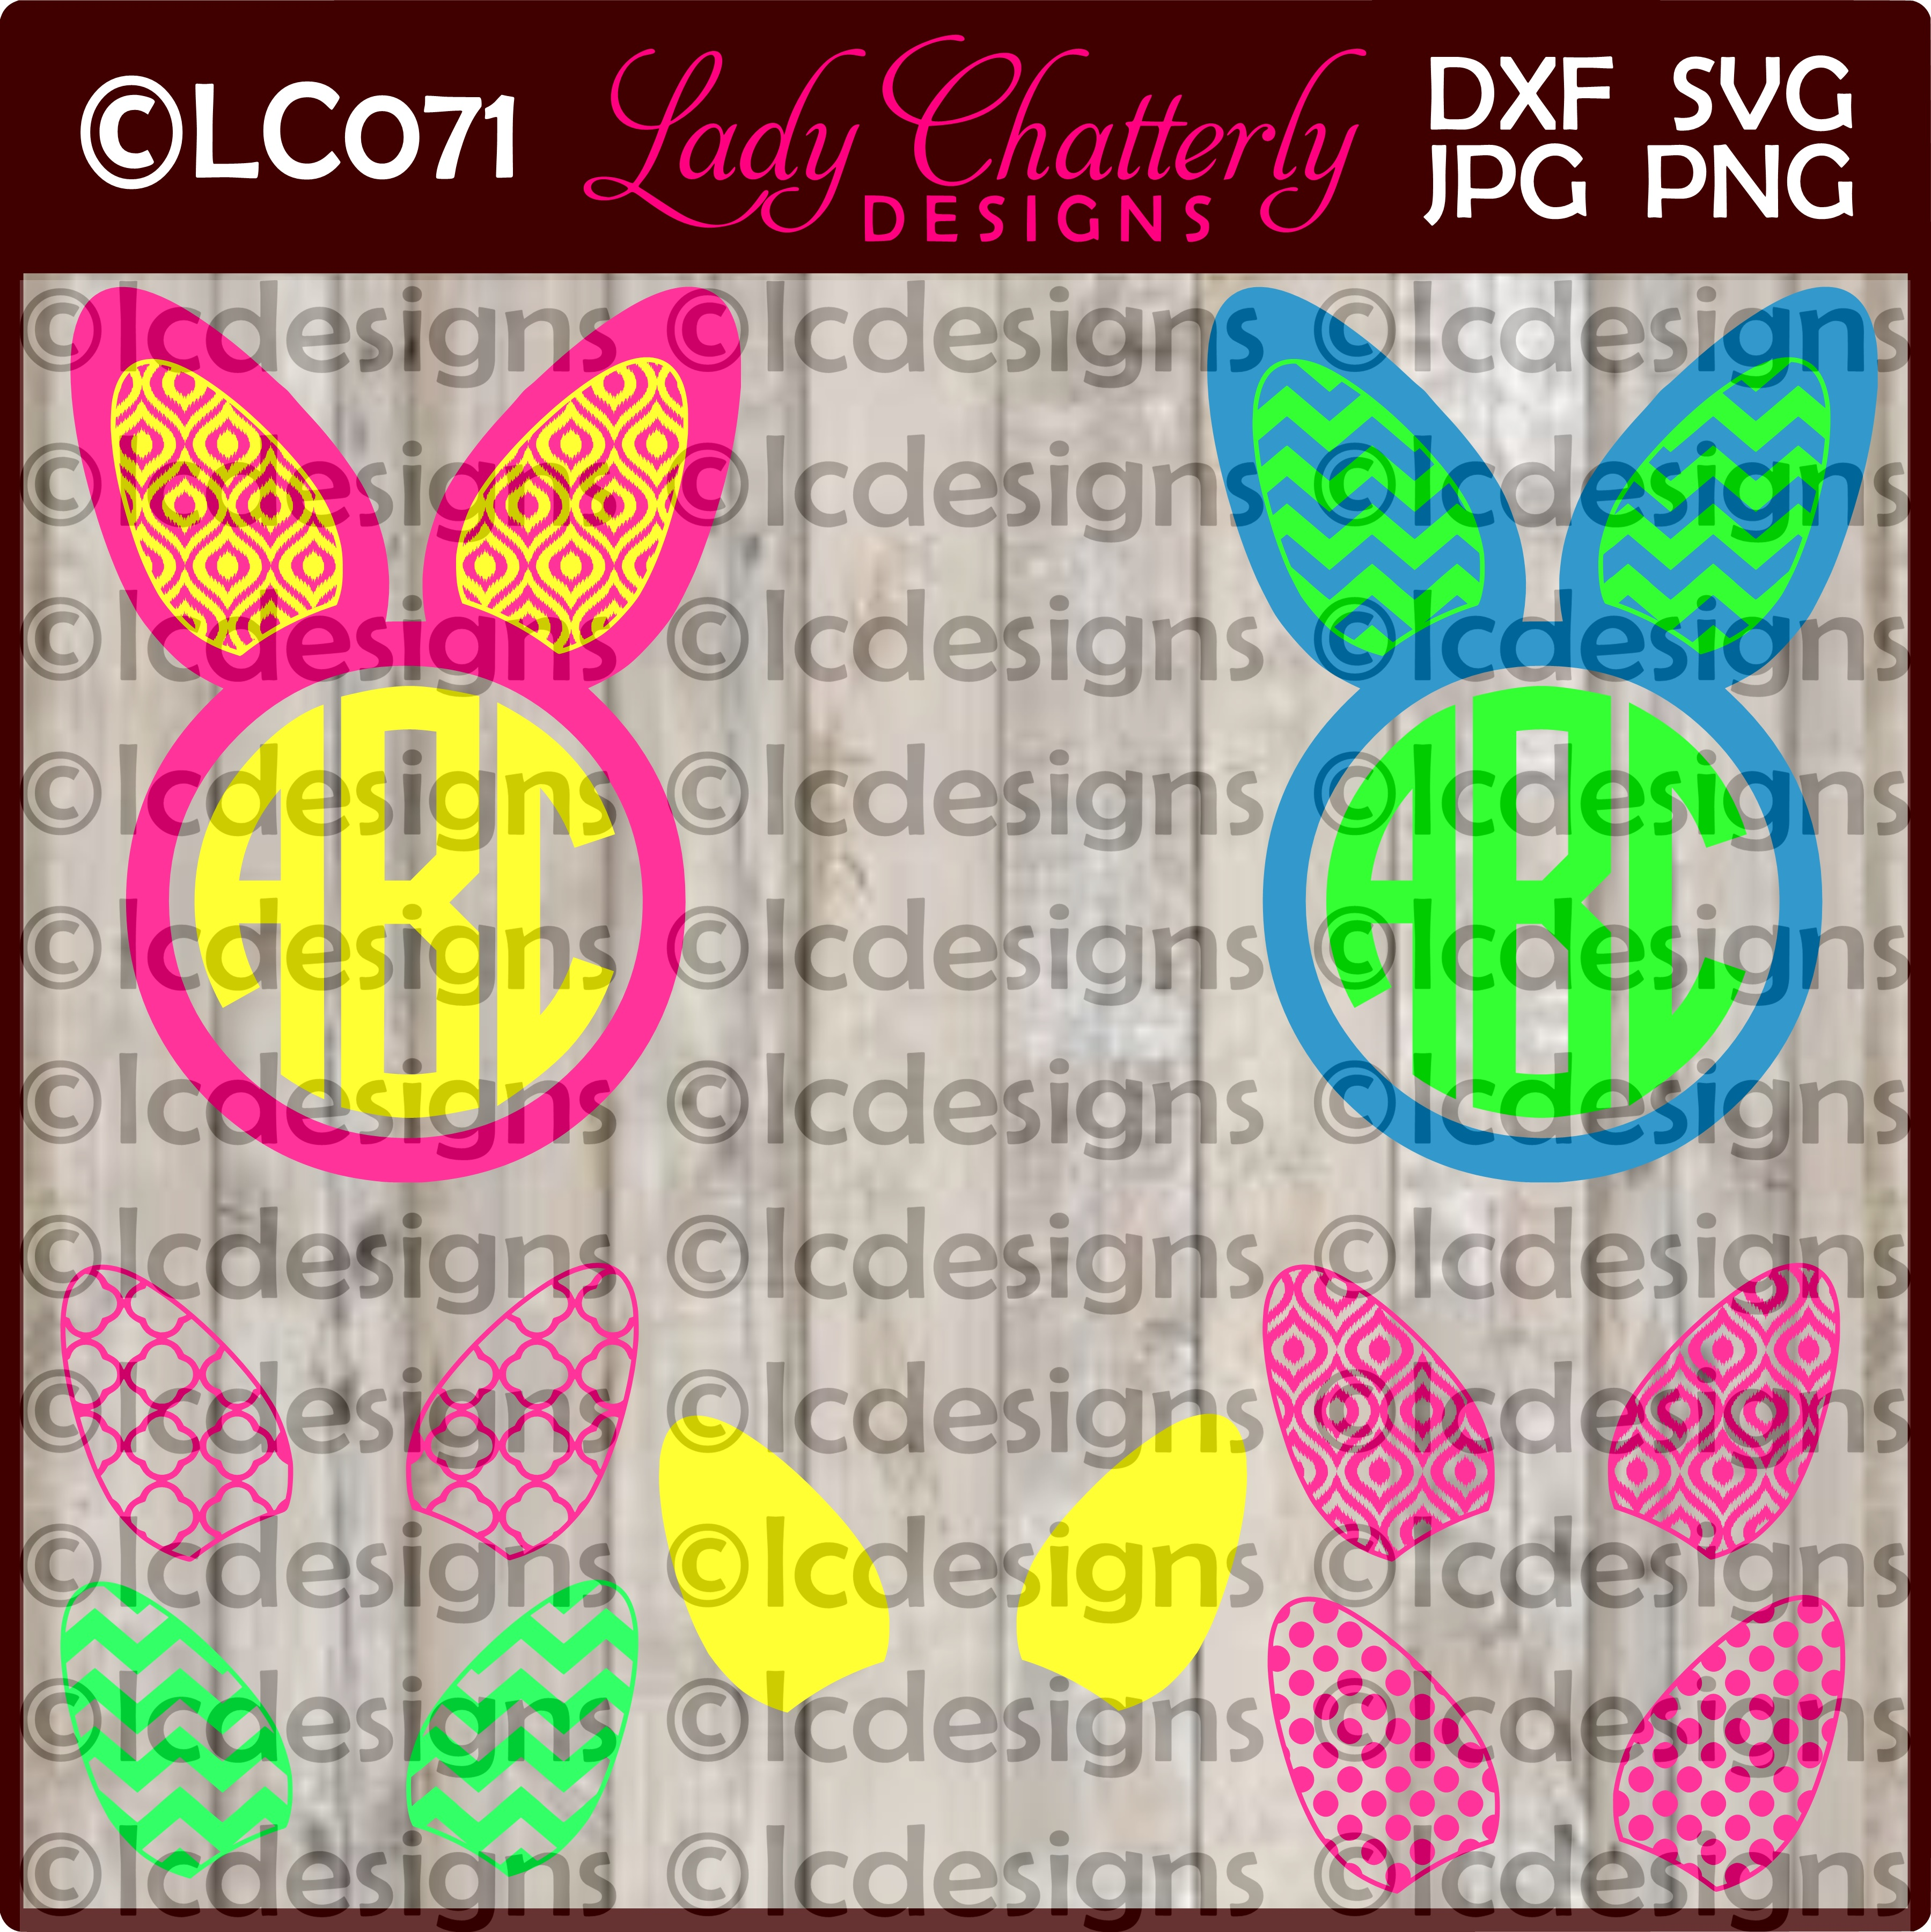 LC071 Bunny Ears and Monograms example image 1